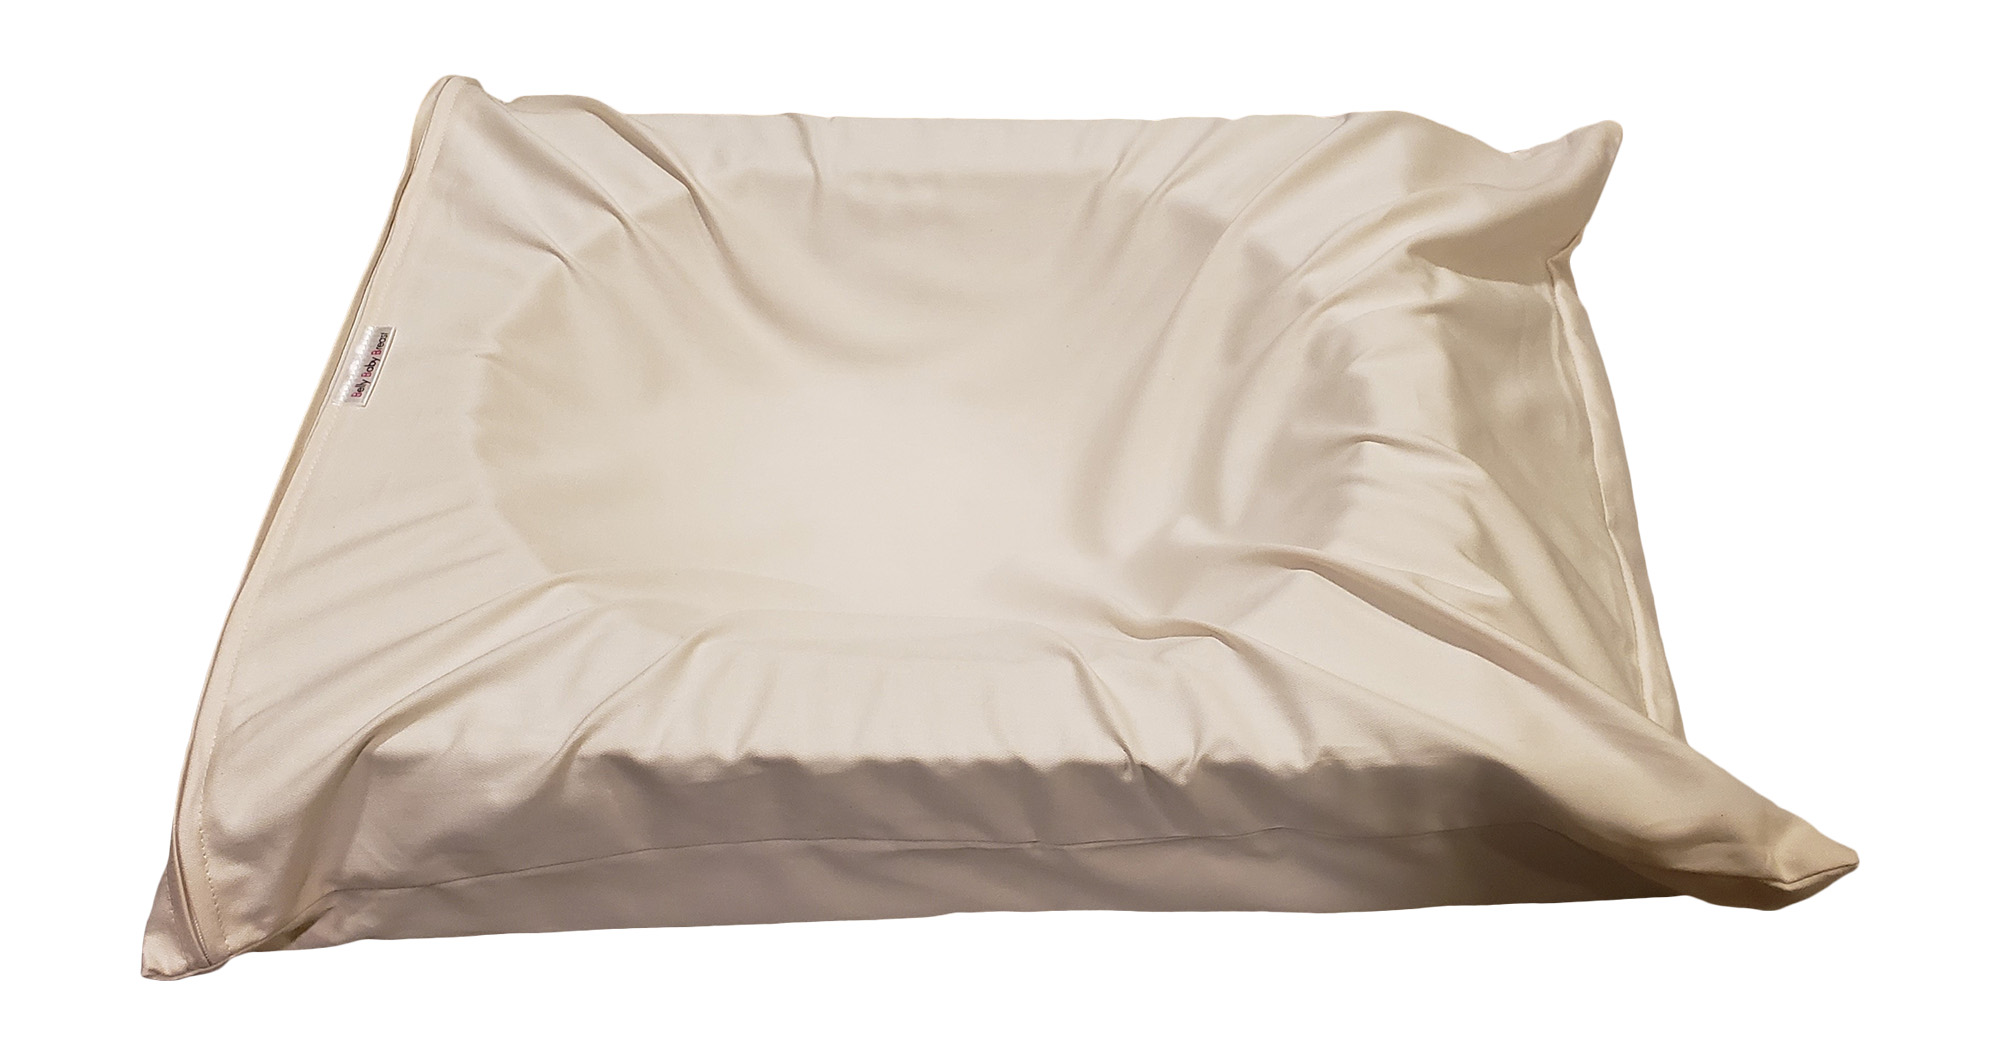 belly down pregnancy pillow pregnancy pillow stomach sleeper belly down sleeping maternity pillow pregnancy body pillow